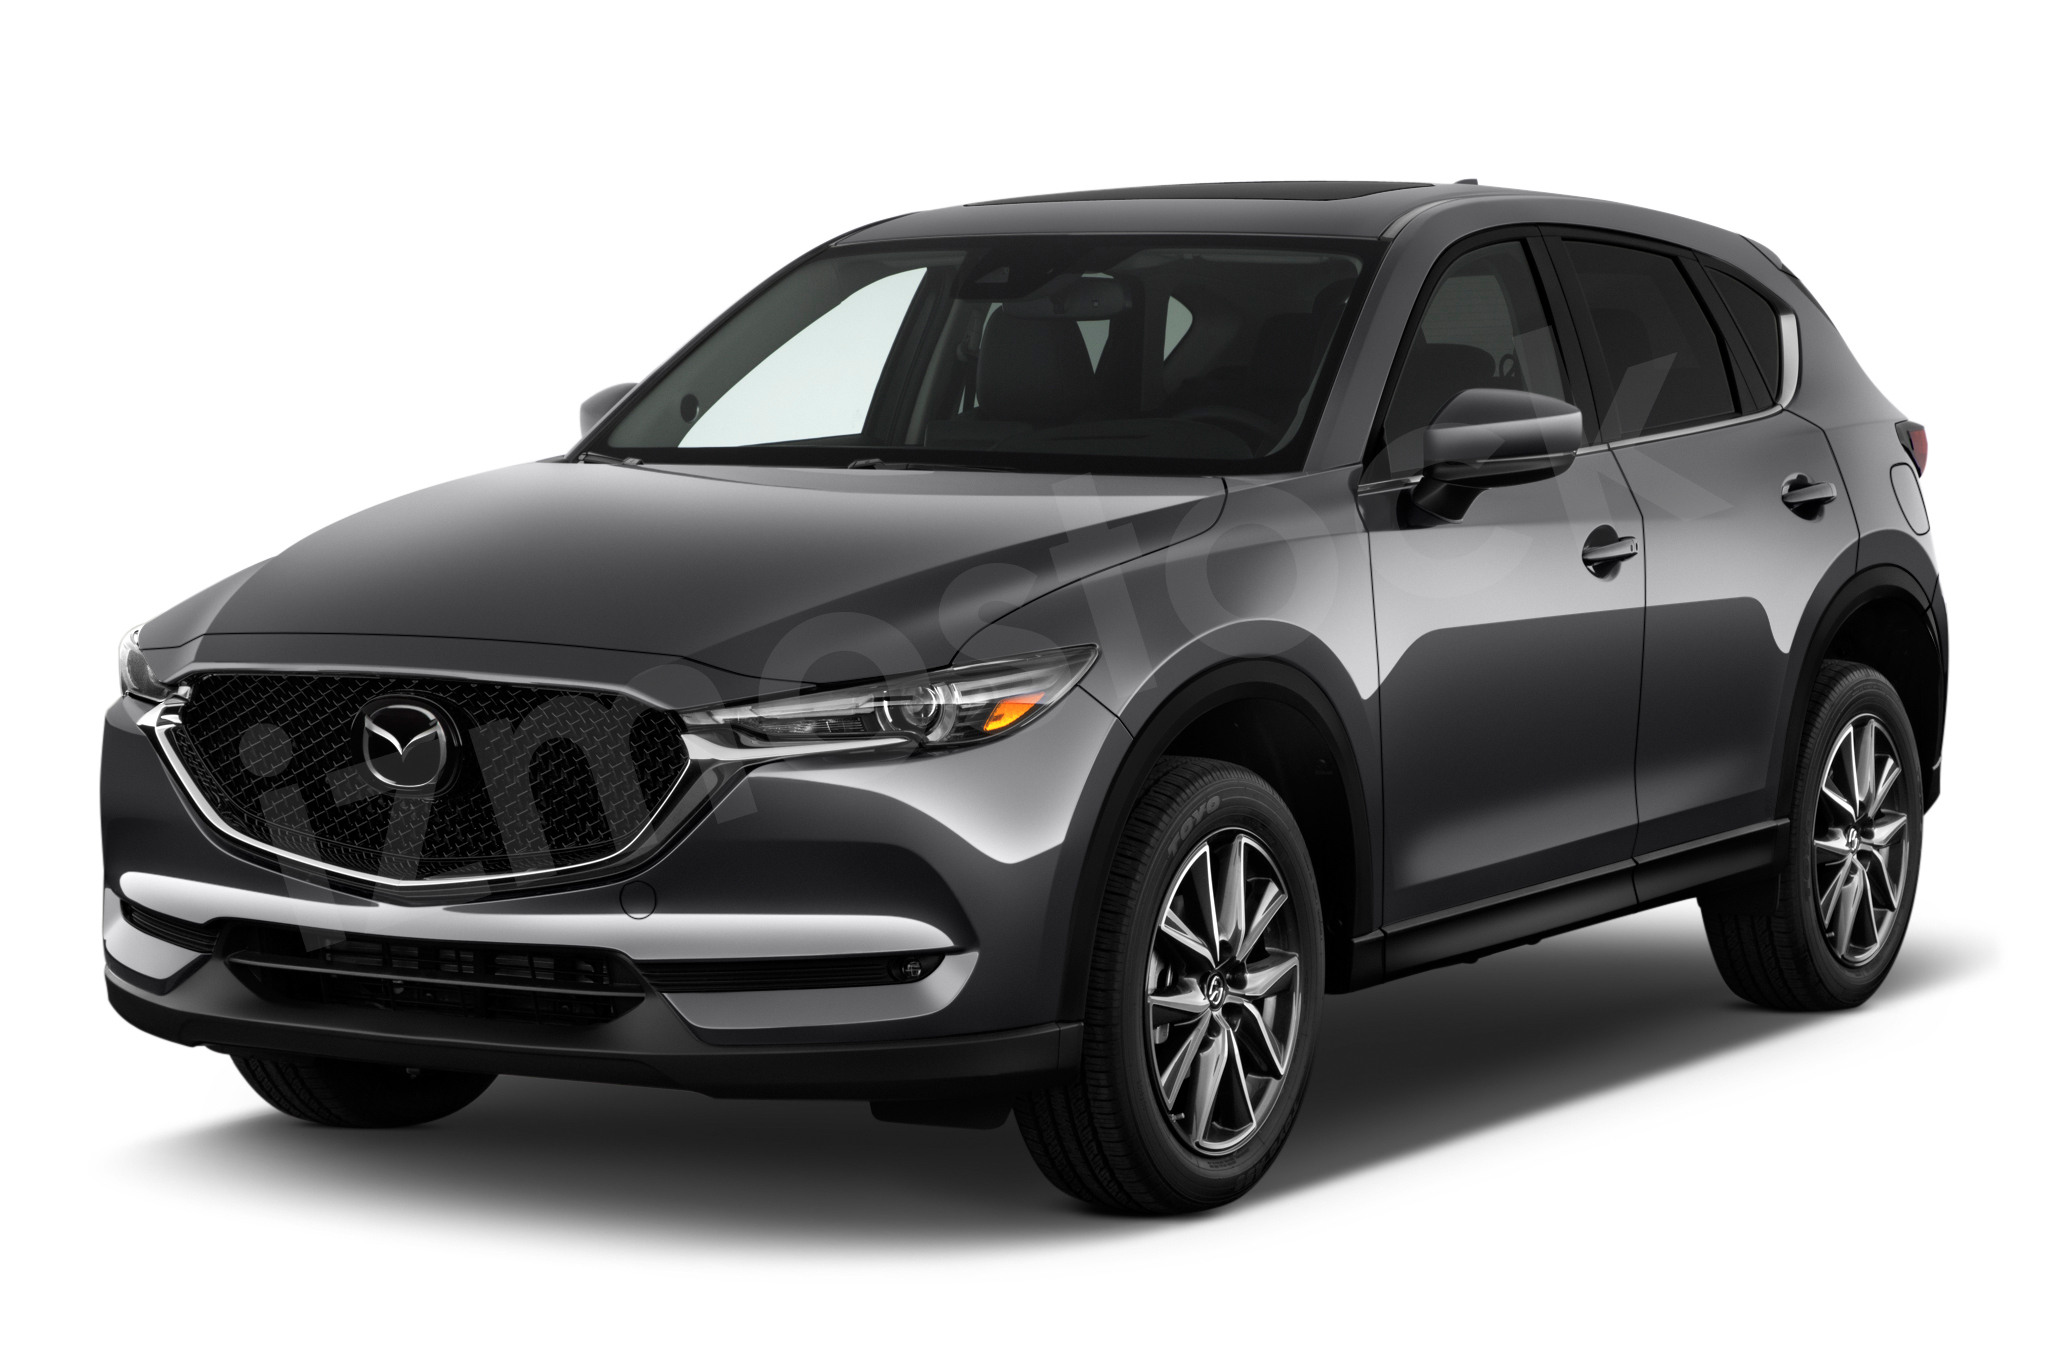 2017 mazda cx5 gt pictures review release date price interior and specs. Black Bedroom Furniture Sets. Home Design Ideas